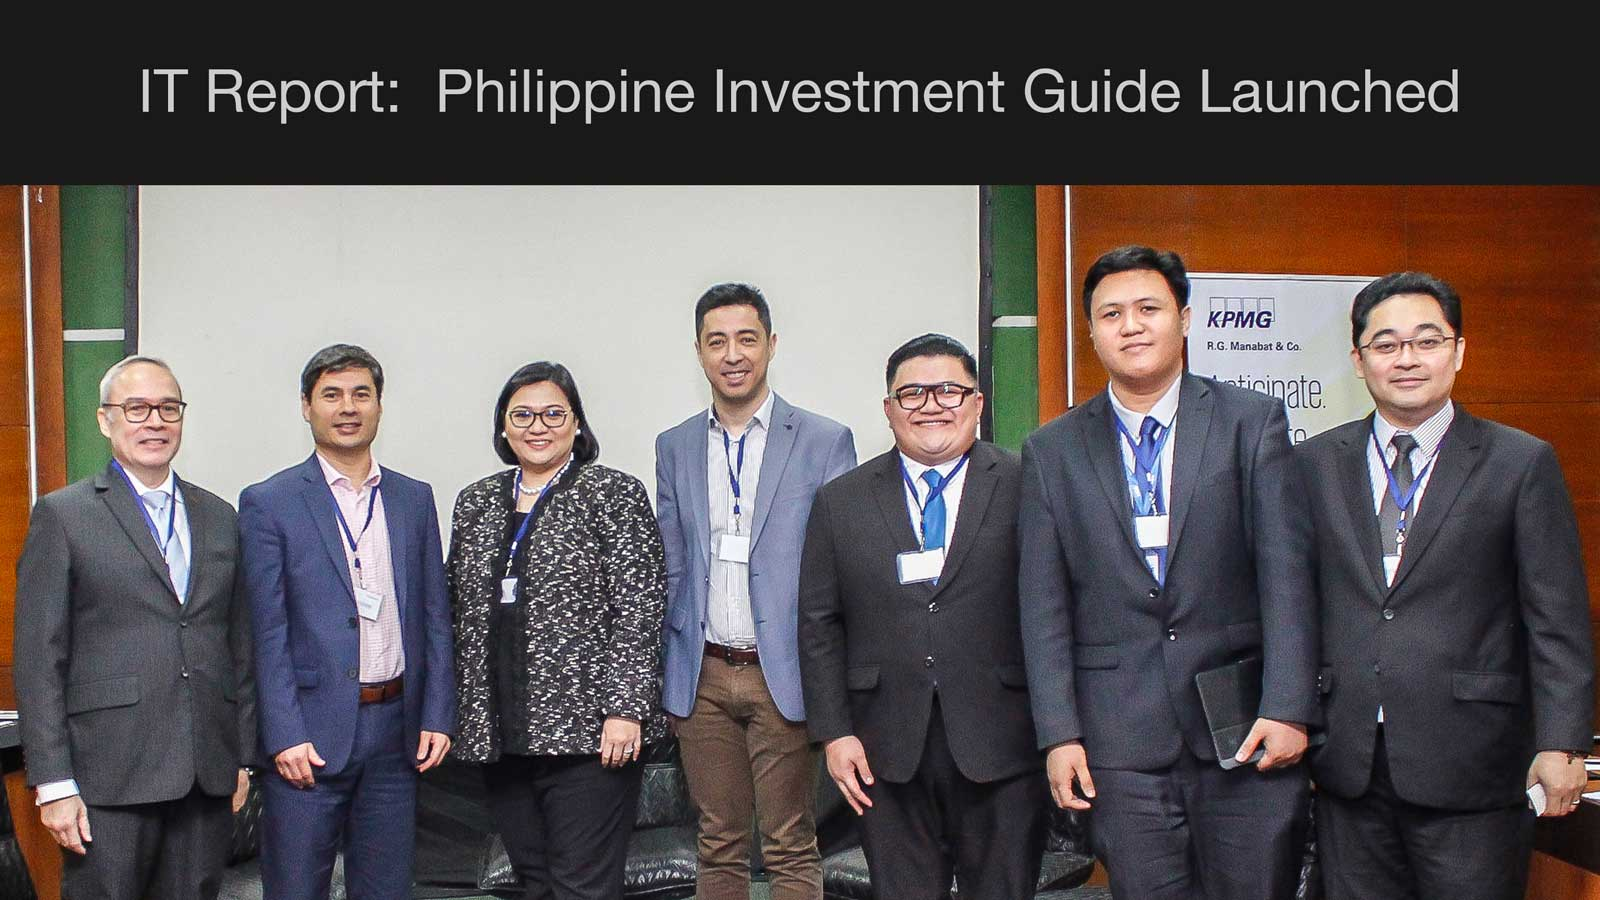 IT Report: Philippines Investment Guide launched